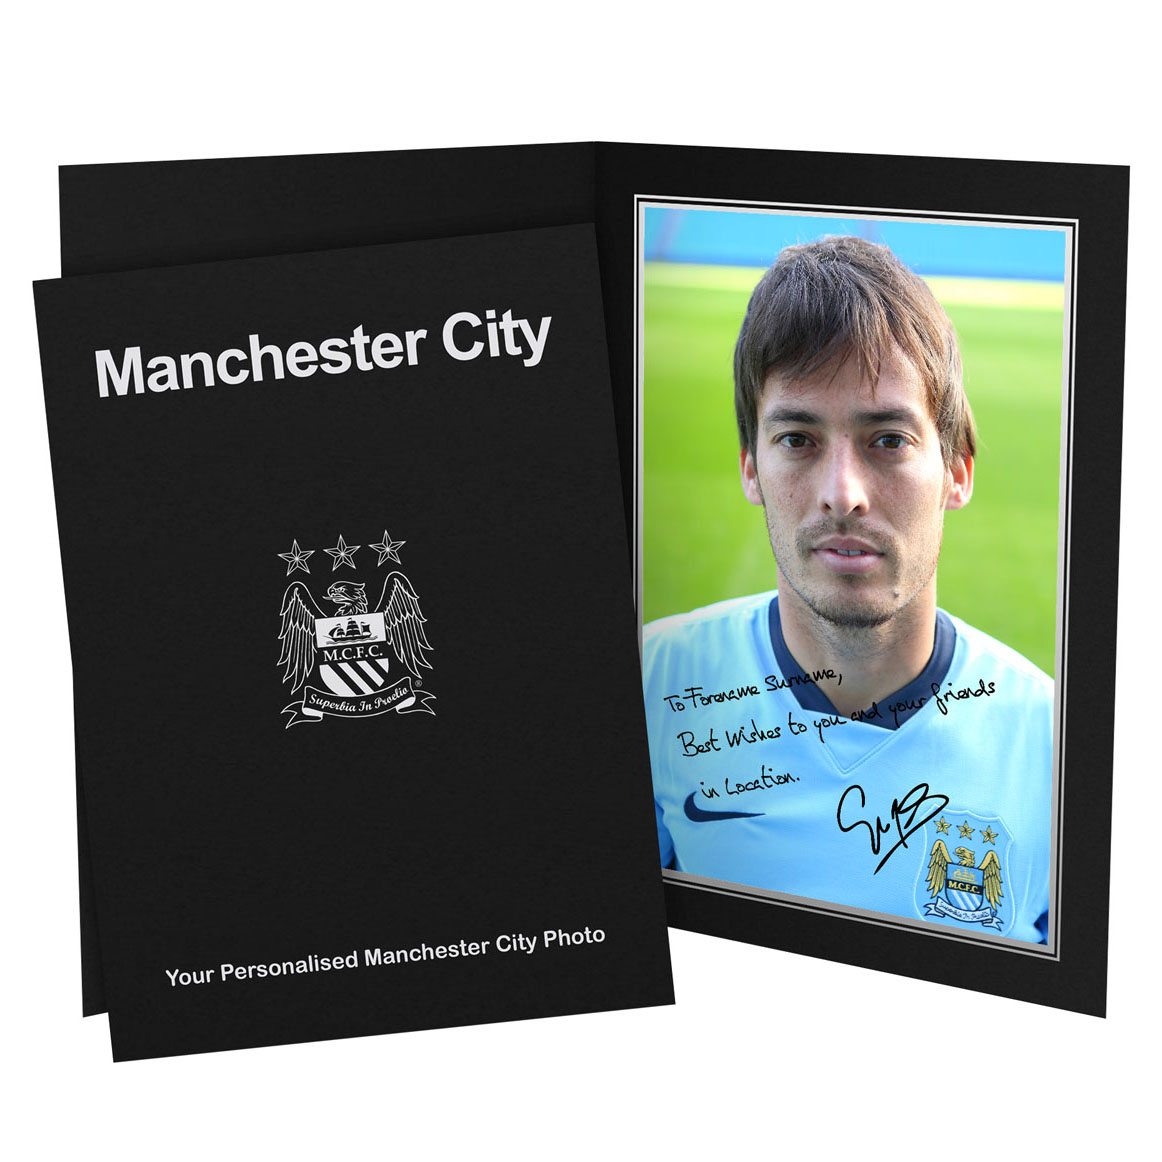 Manchester City Personalised Signature Photo in Presentation Folder - Silva